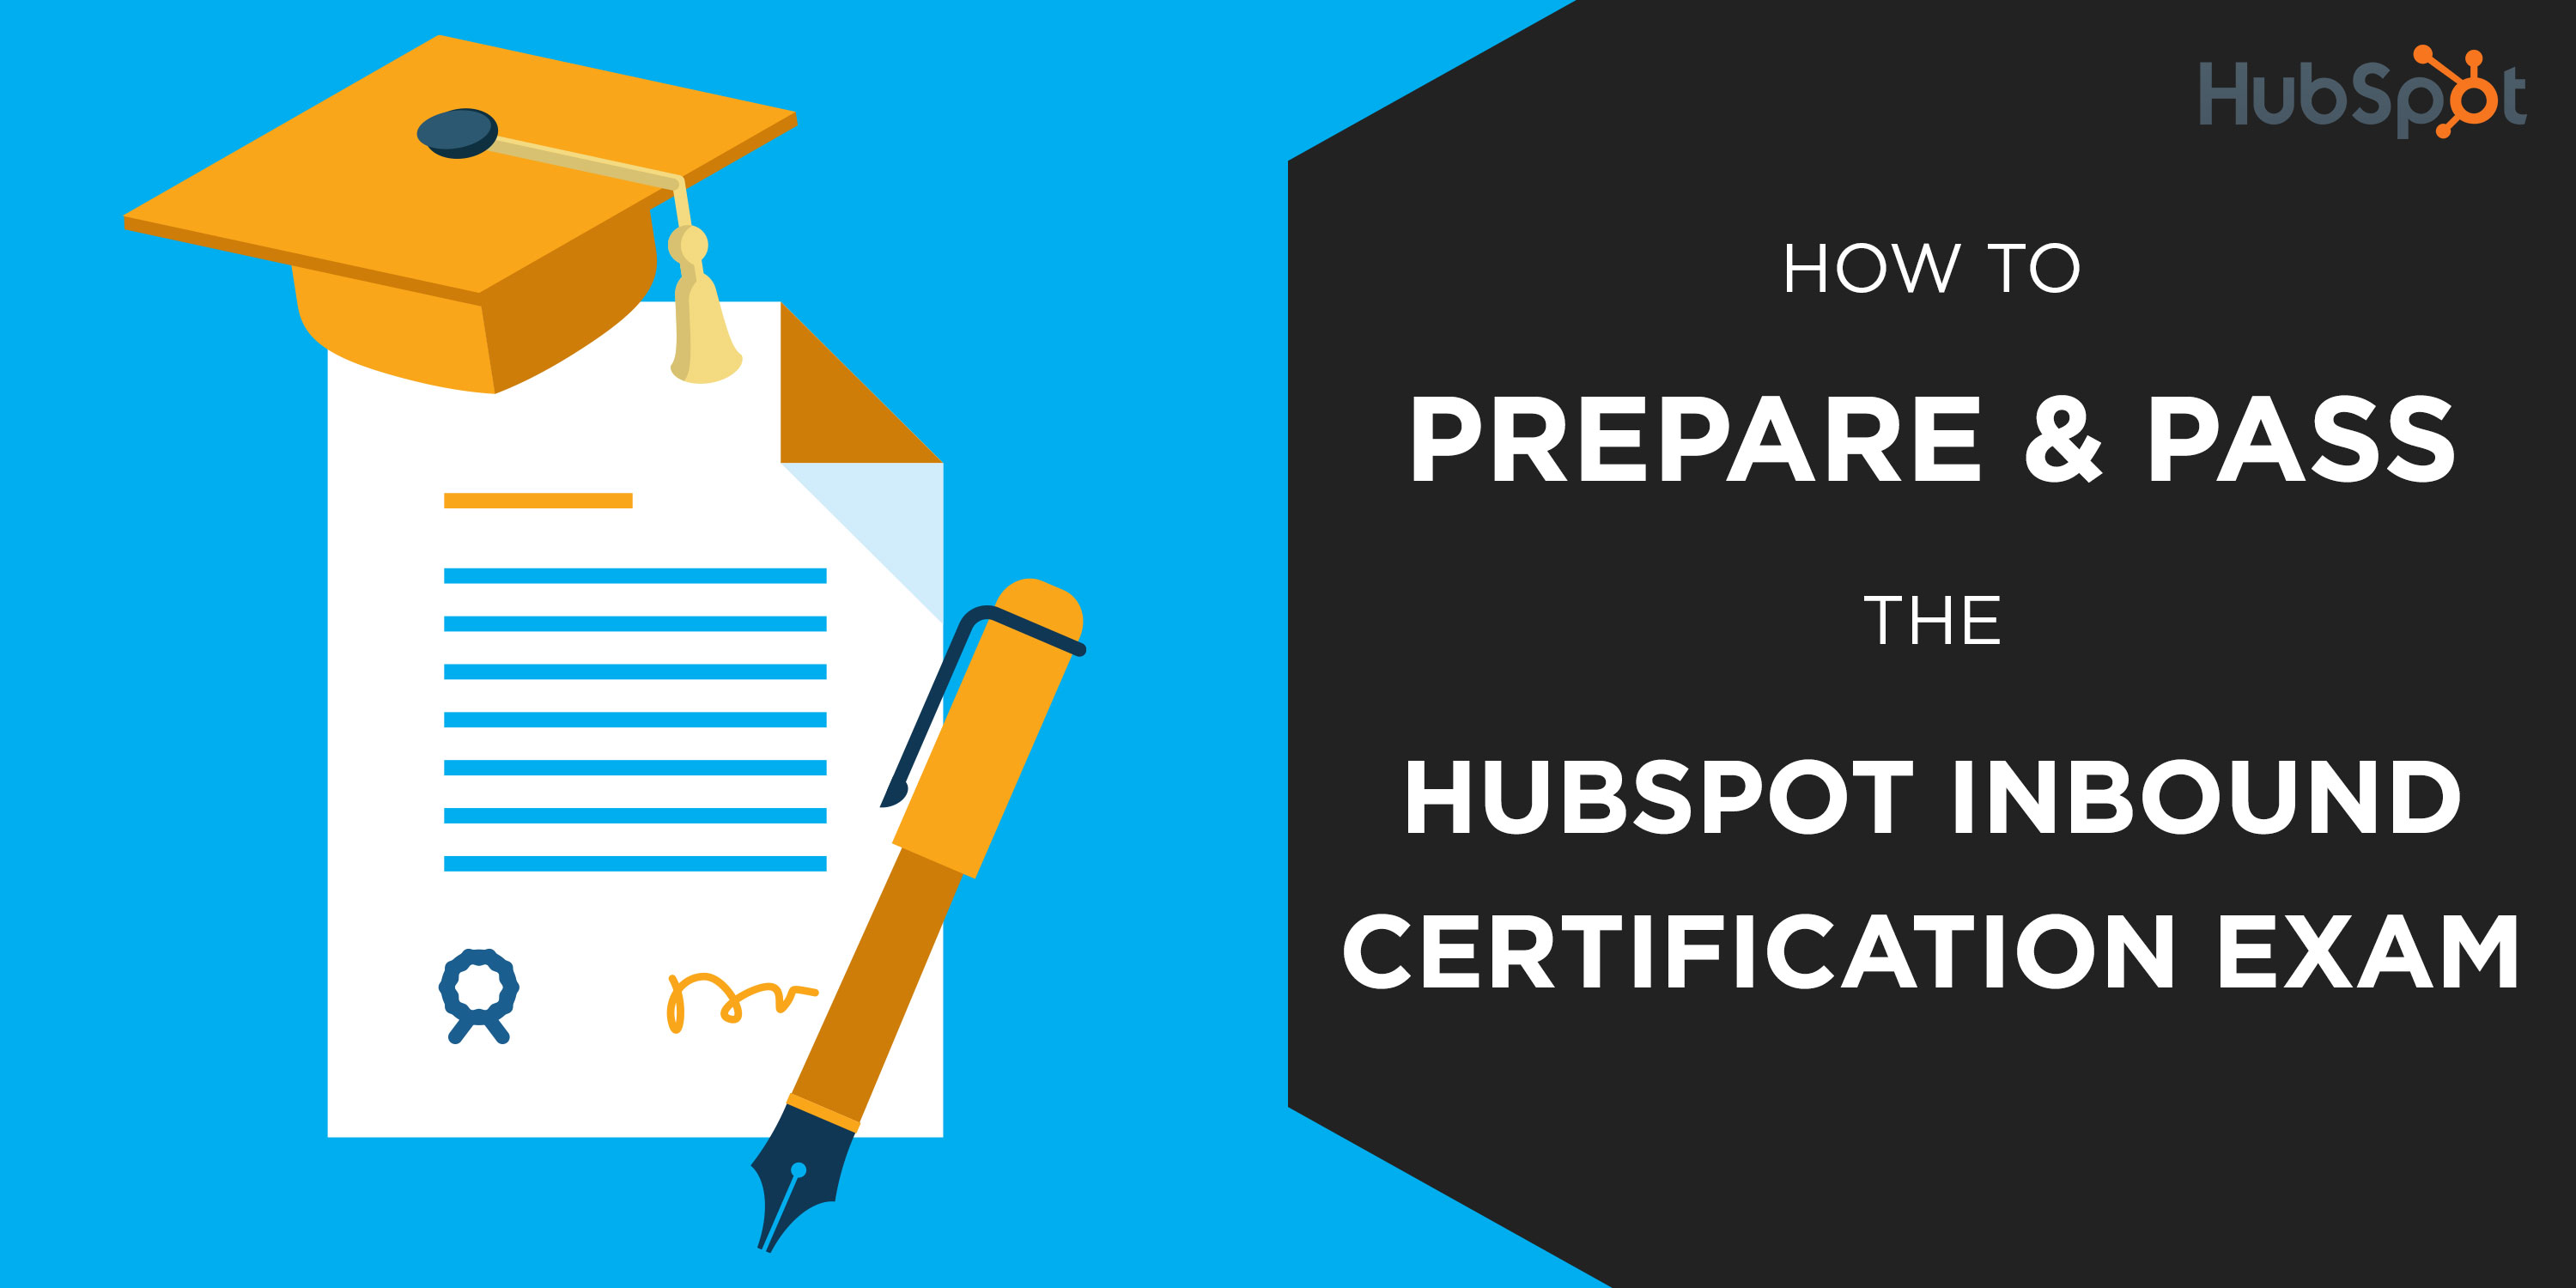 How To Prepare And Pass The Hubspot Inbound Certification Exam